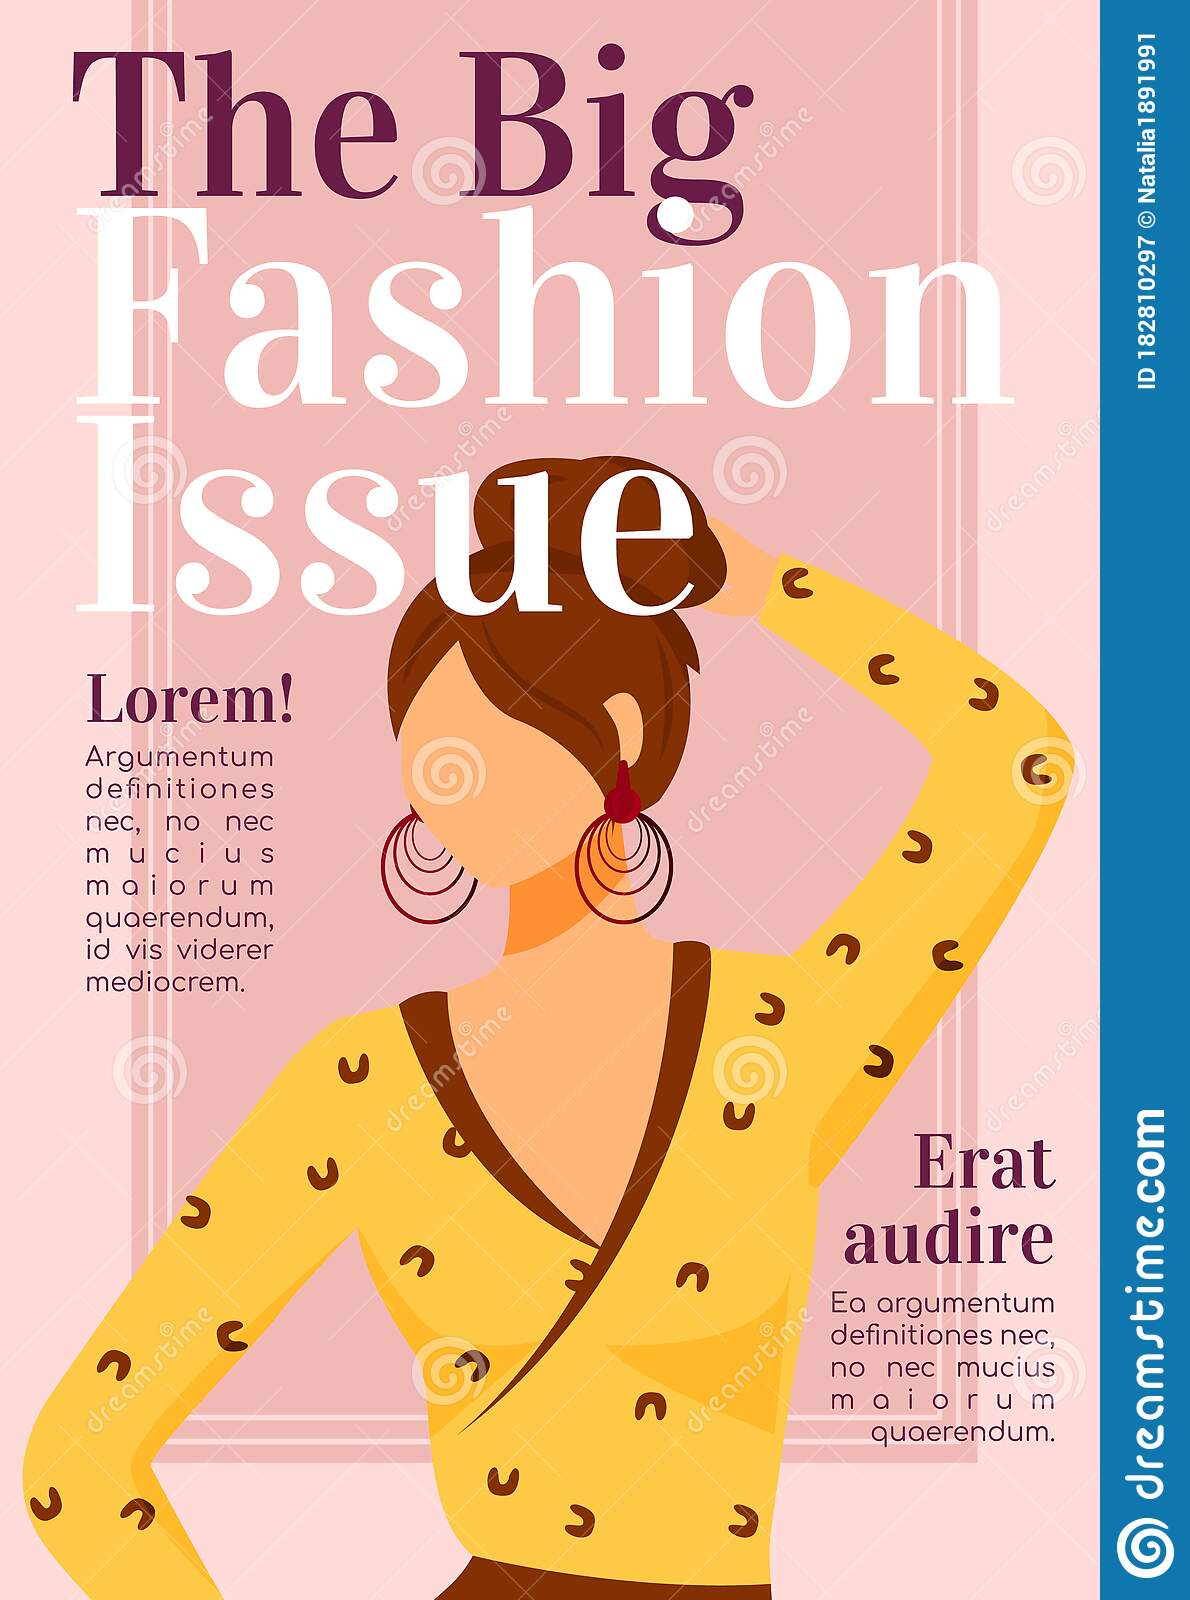 Fashion News Magazine Cover Template Stock Vector Illustration Of Advertising Guide 182810297